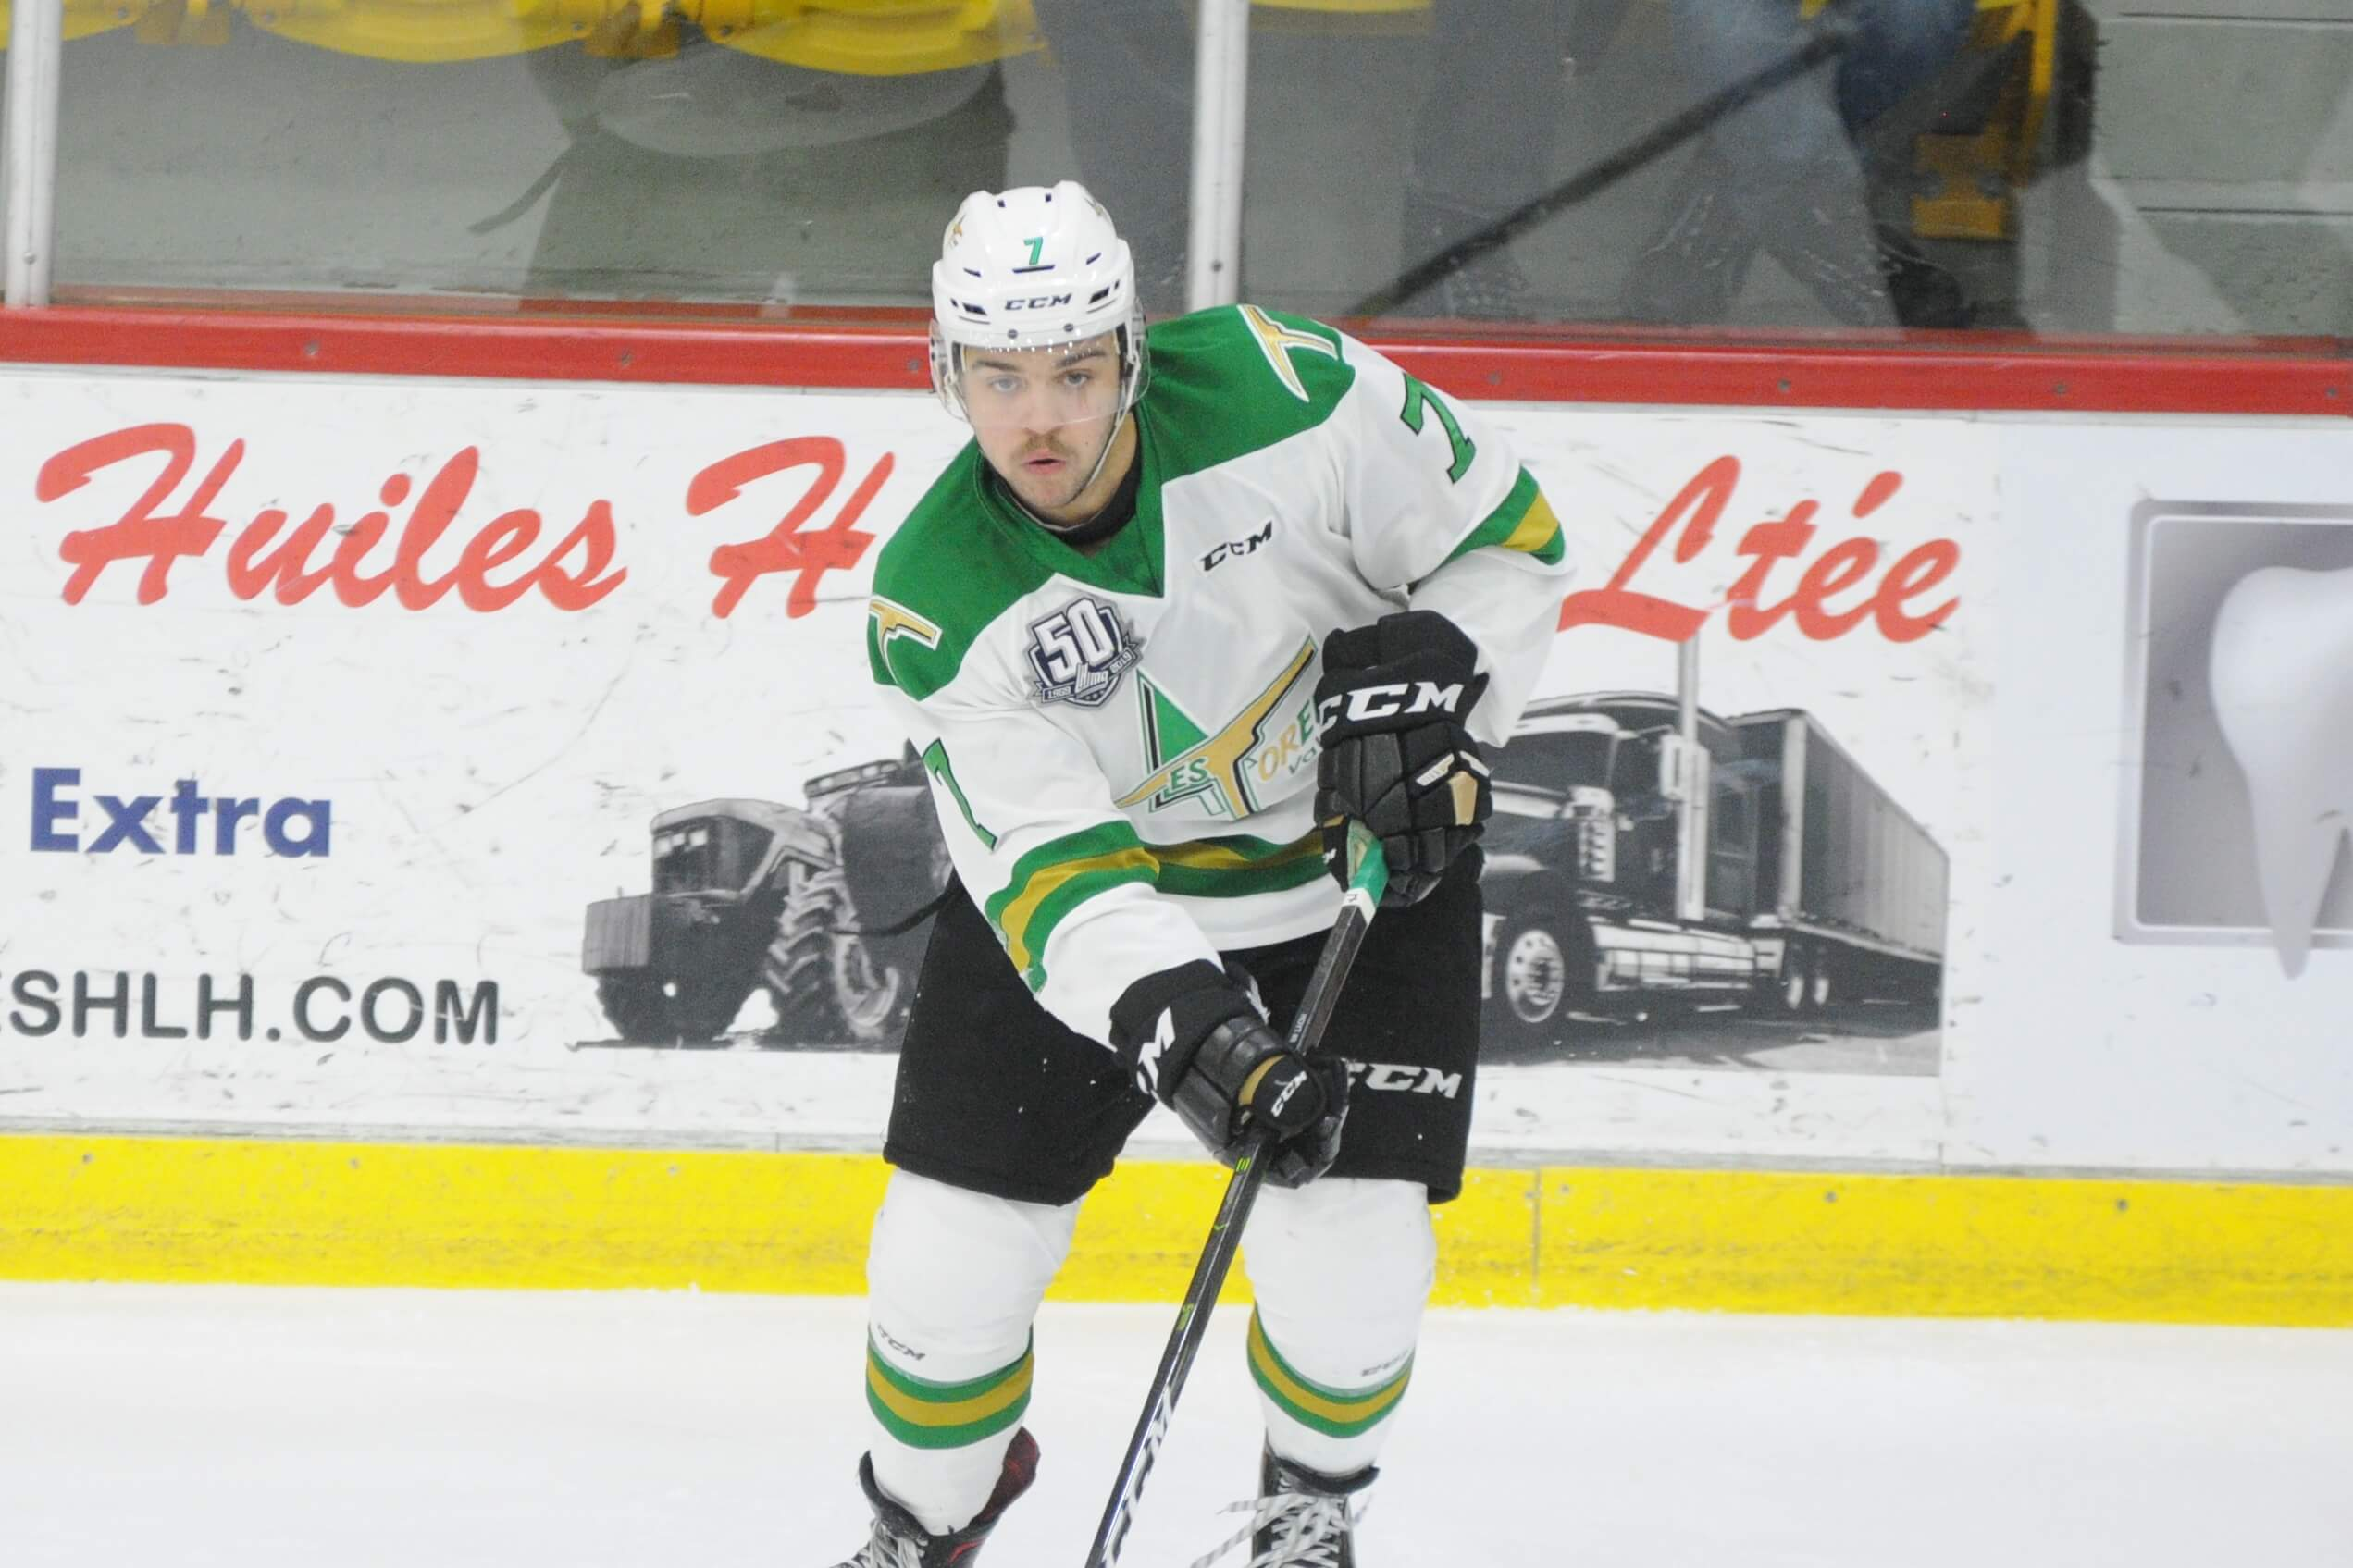 Peyton Hoyt - Foreurs Val-d'Or